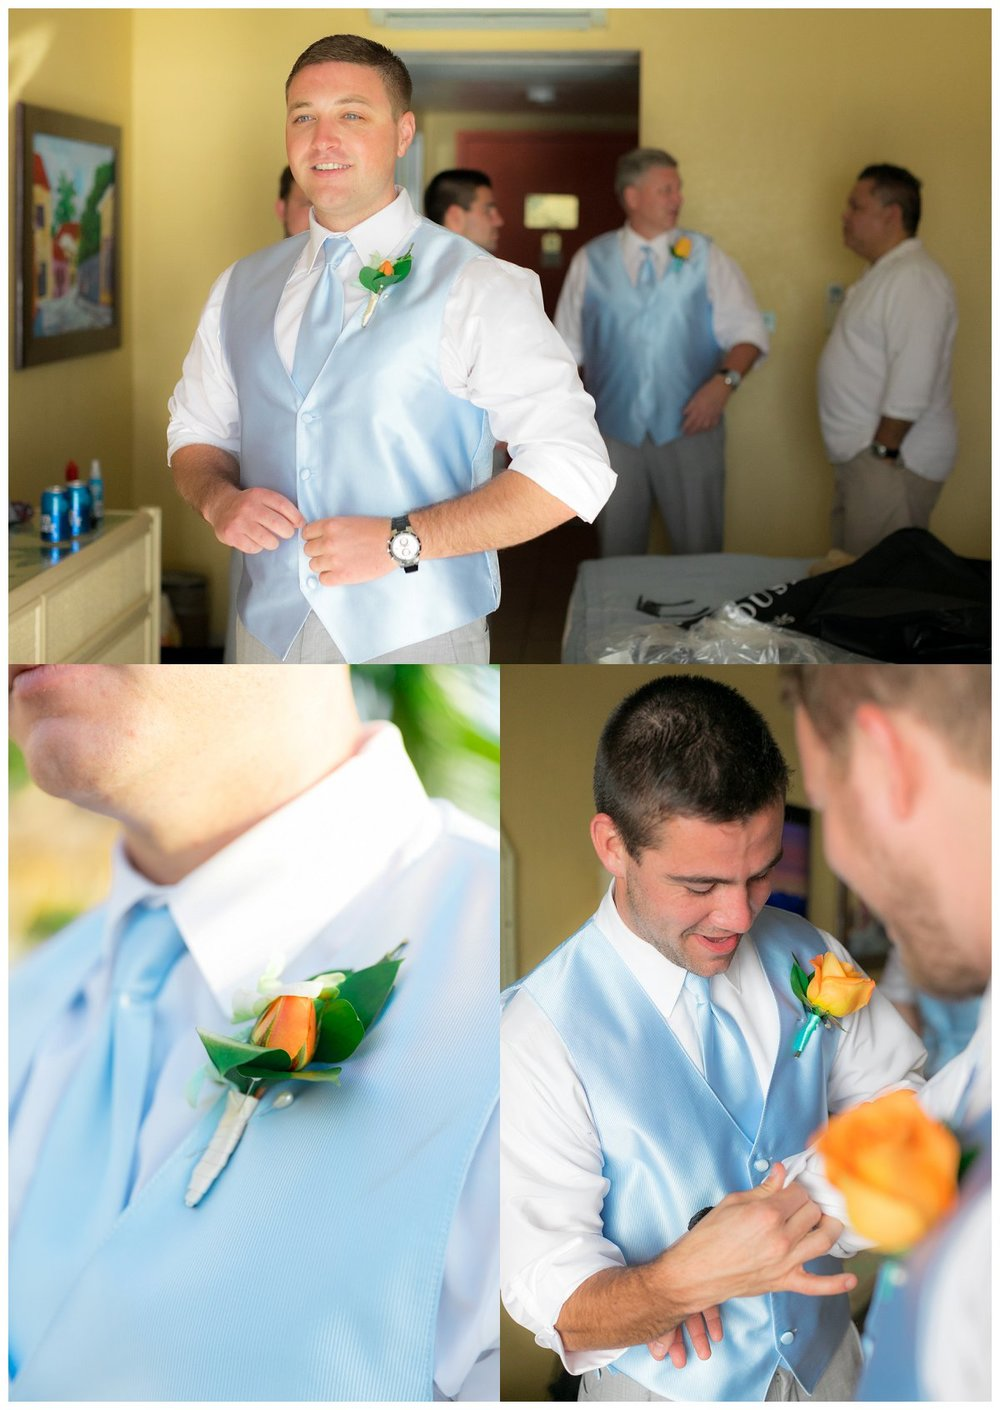 st-thomas-beach-wedding-groom-attire